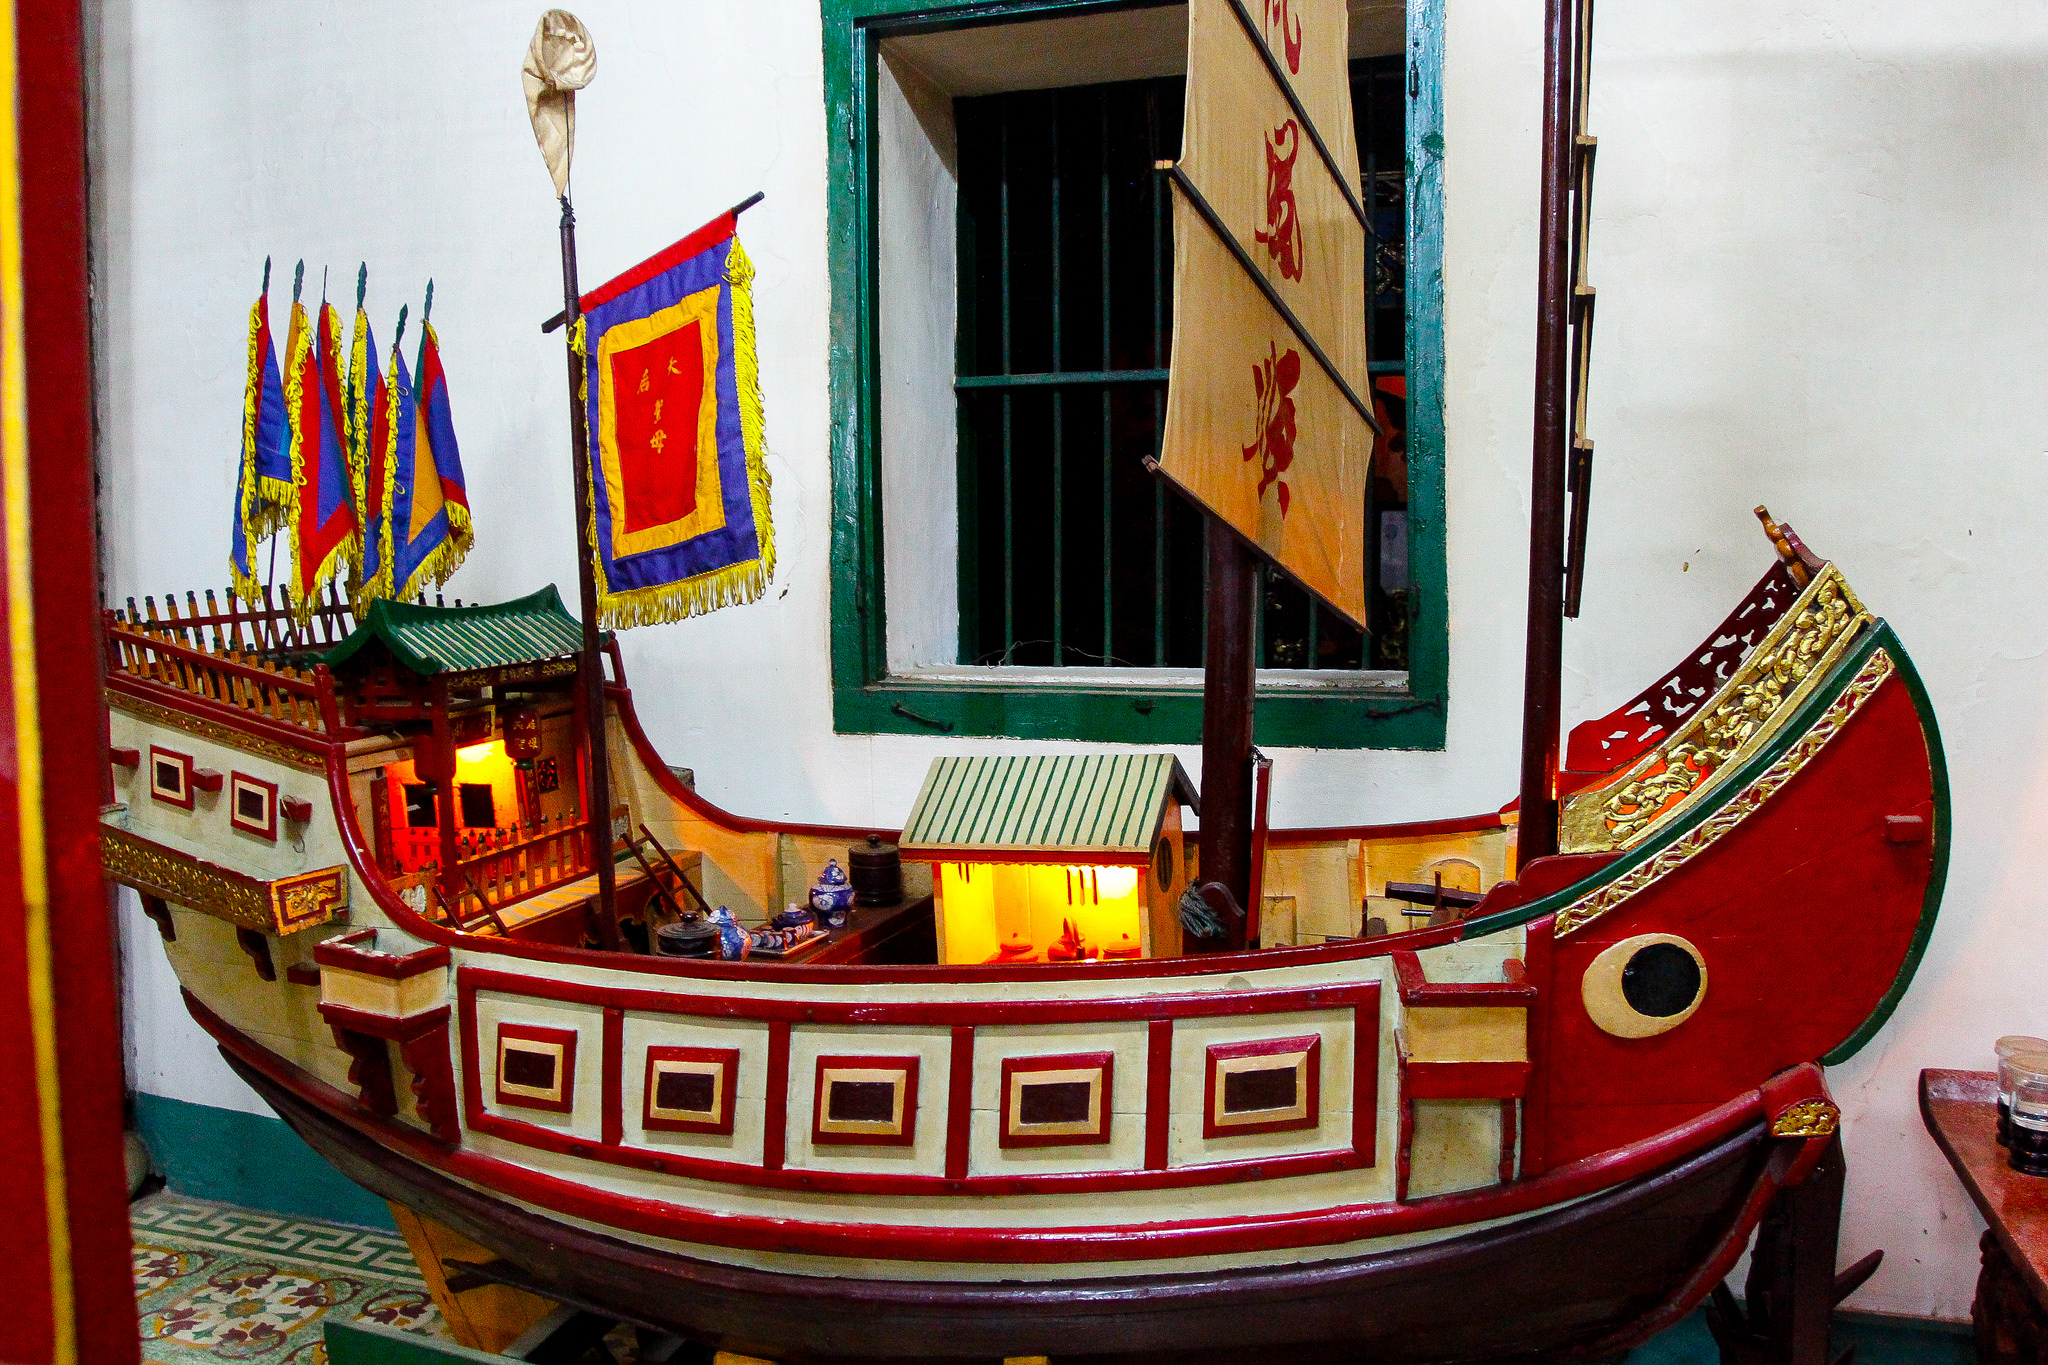 Chinese boat model at Phuoc Kien Assembly Hall, Vietnam